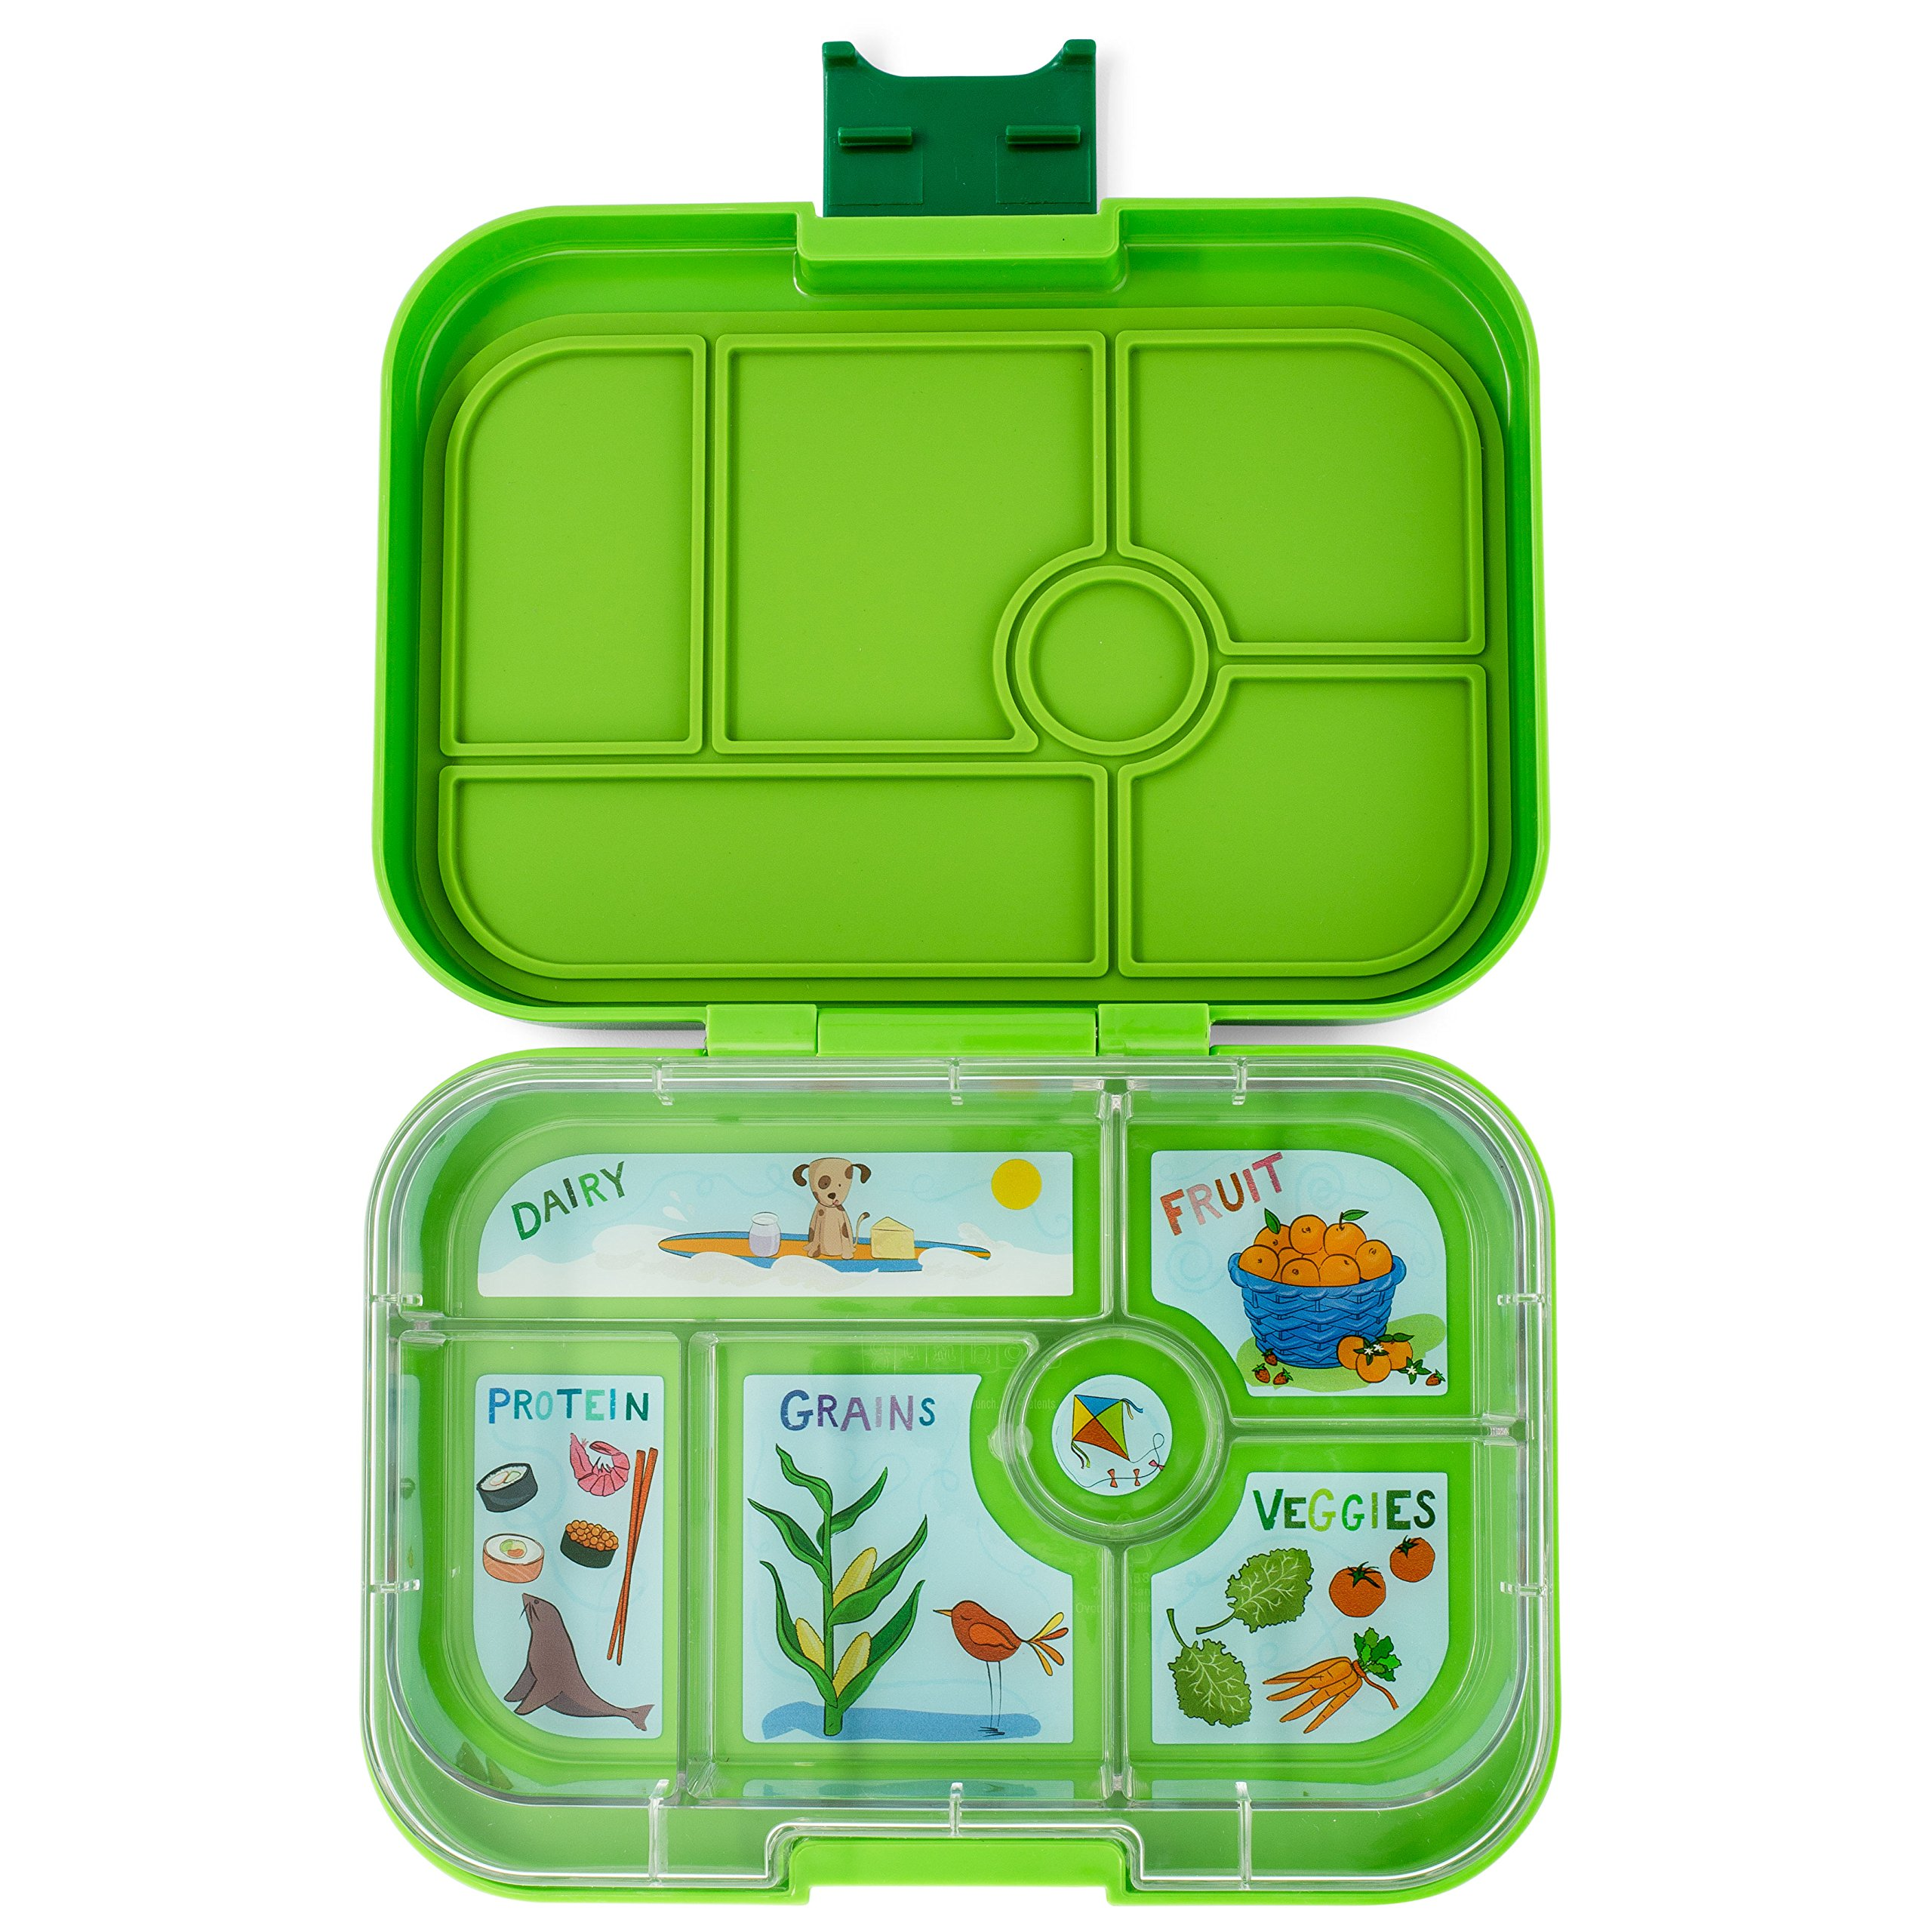 YUMBOX Original (Avocado Green) Leakproof Bento Lunch Box Container for Kids: Bento-style lunch box offers Durable, Leak-proof, On-the-go Meal and Snack Packing by Yumbox (Image #2)